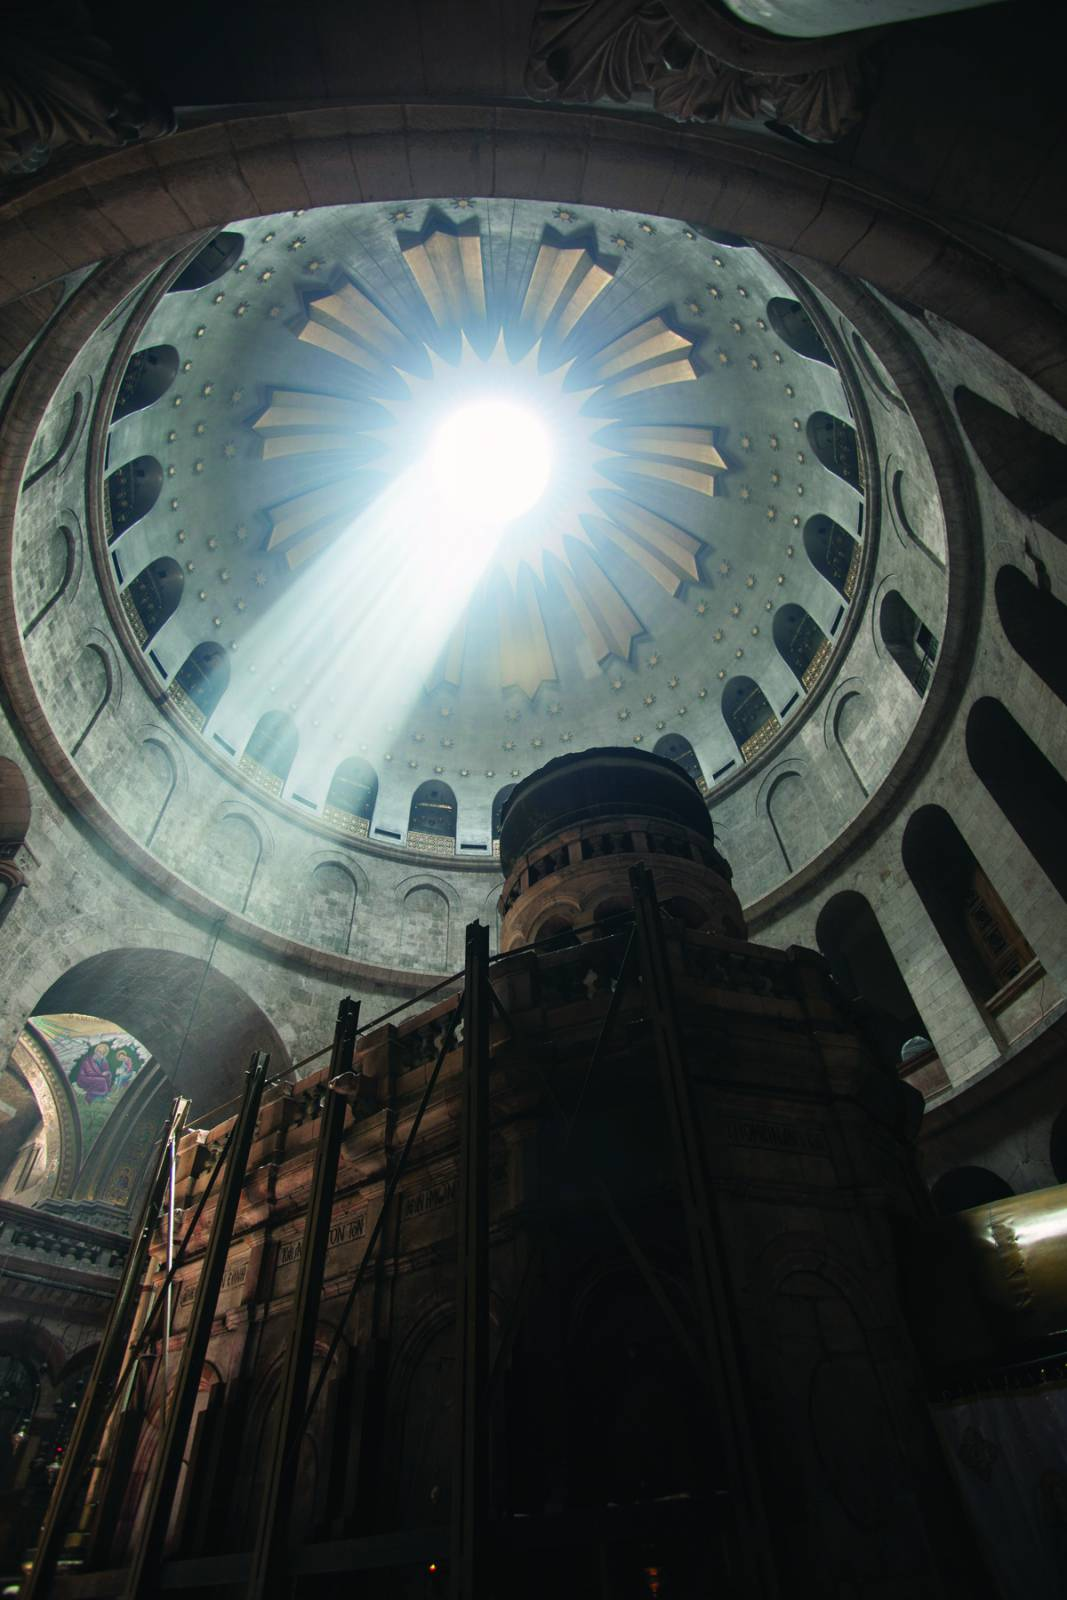 Light spills through the rotunda of the Church of the Holy Sepulchre in Jerusalem onto the edicule, which many believe covers the empty tomb of Jesus. Photo by Gary D. Myers